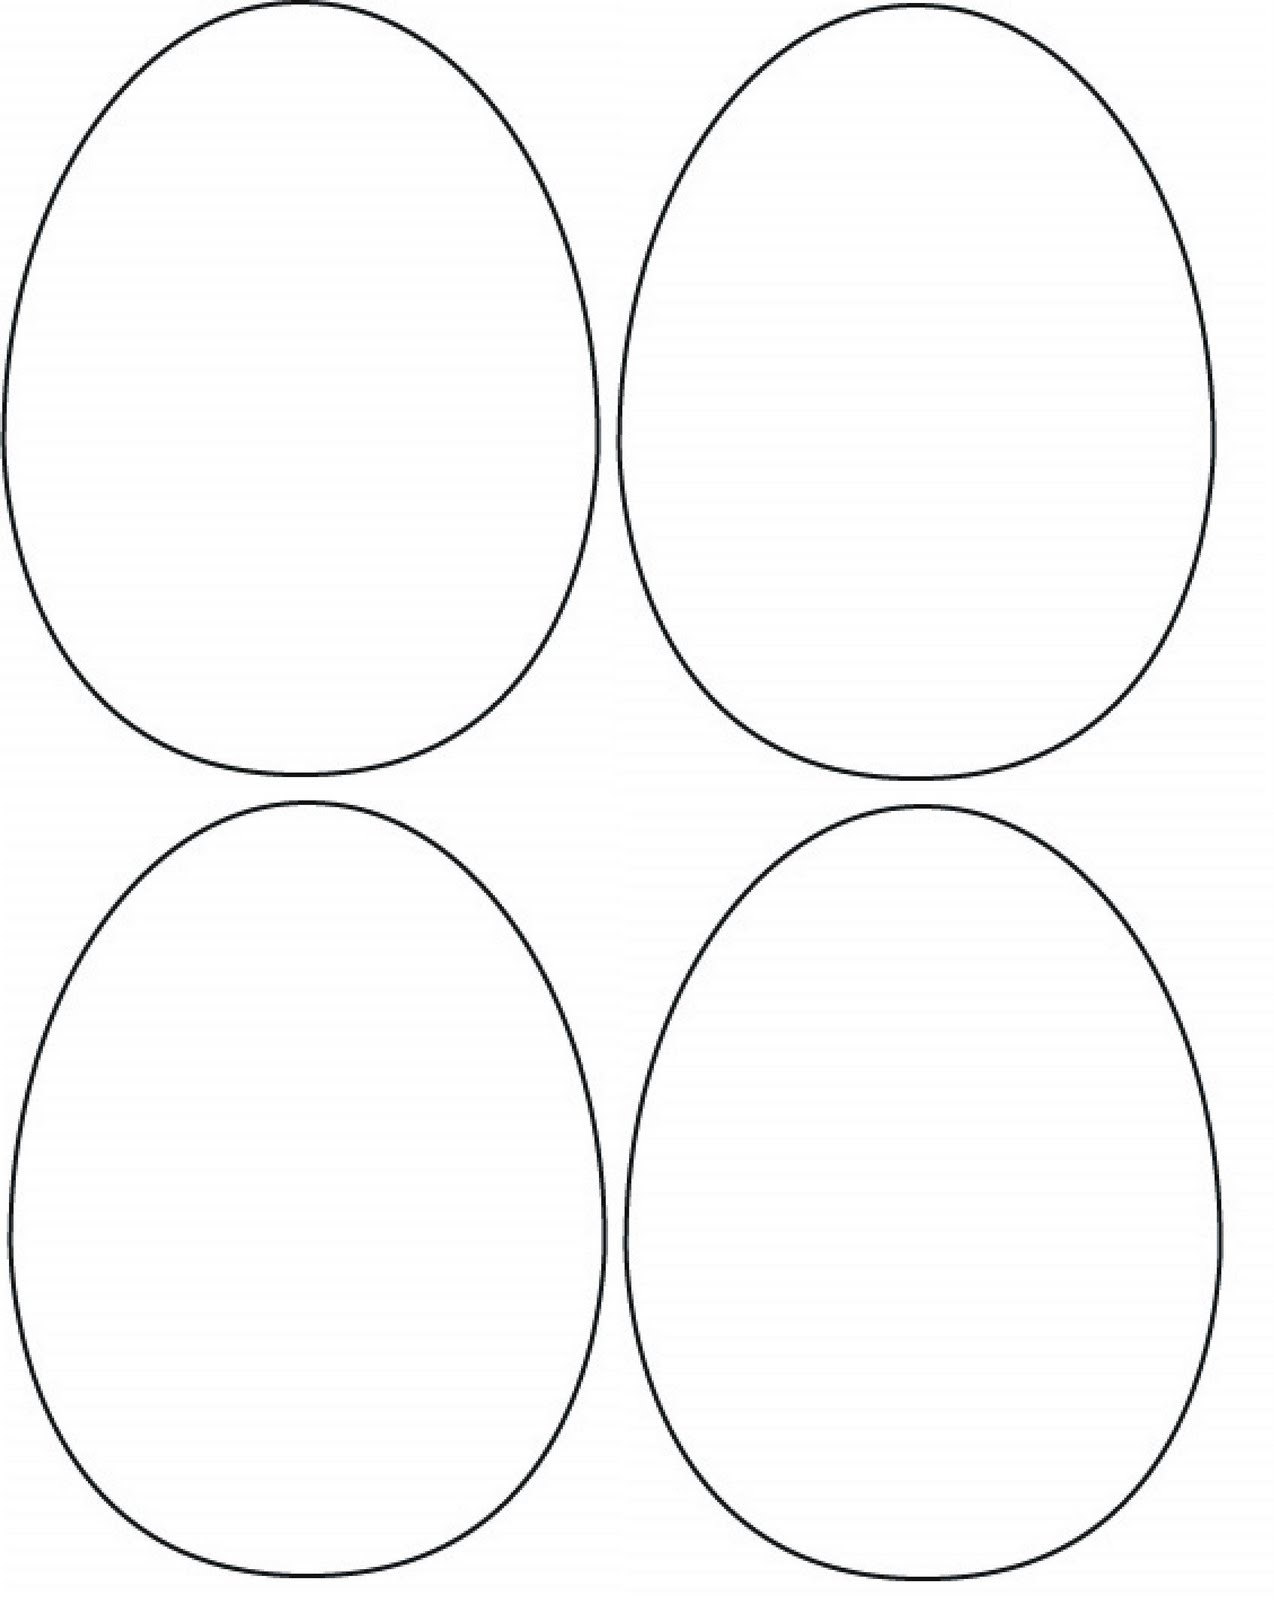 cake ideas and designs. free printable easter egg card template ... clipart black and white download